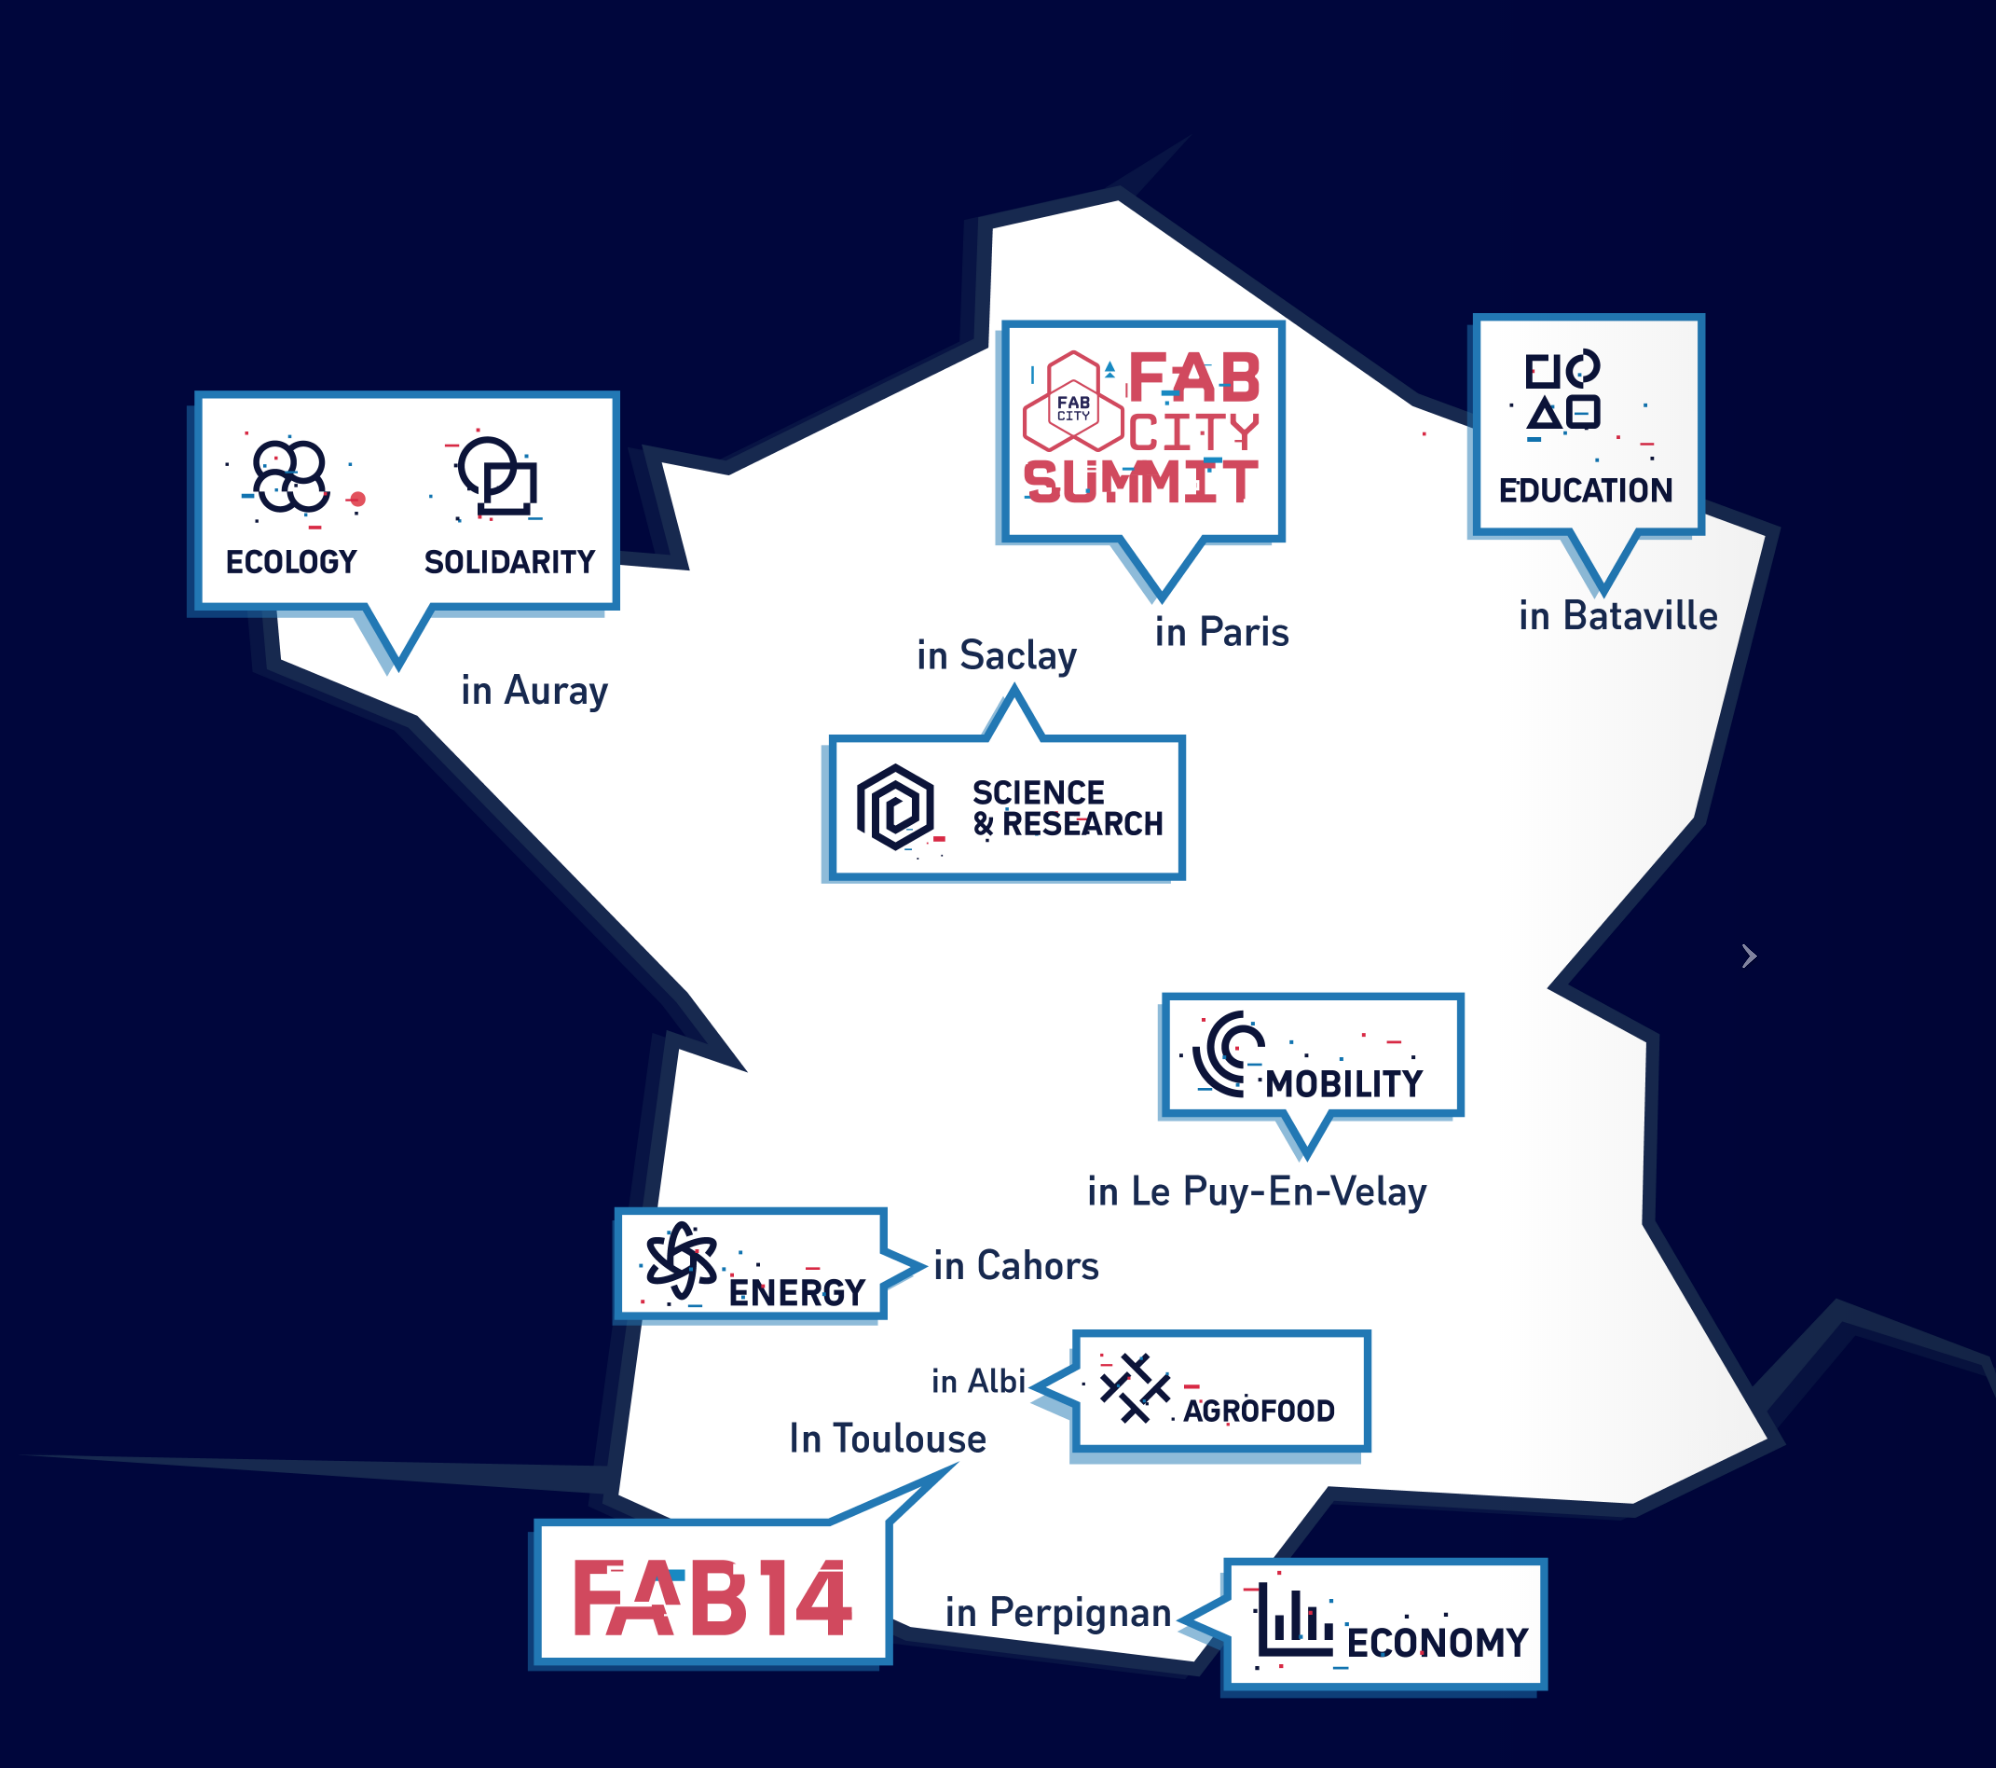 Food, Mobility, and Machines are Hot Topics at Fab14